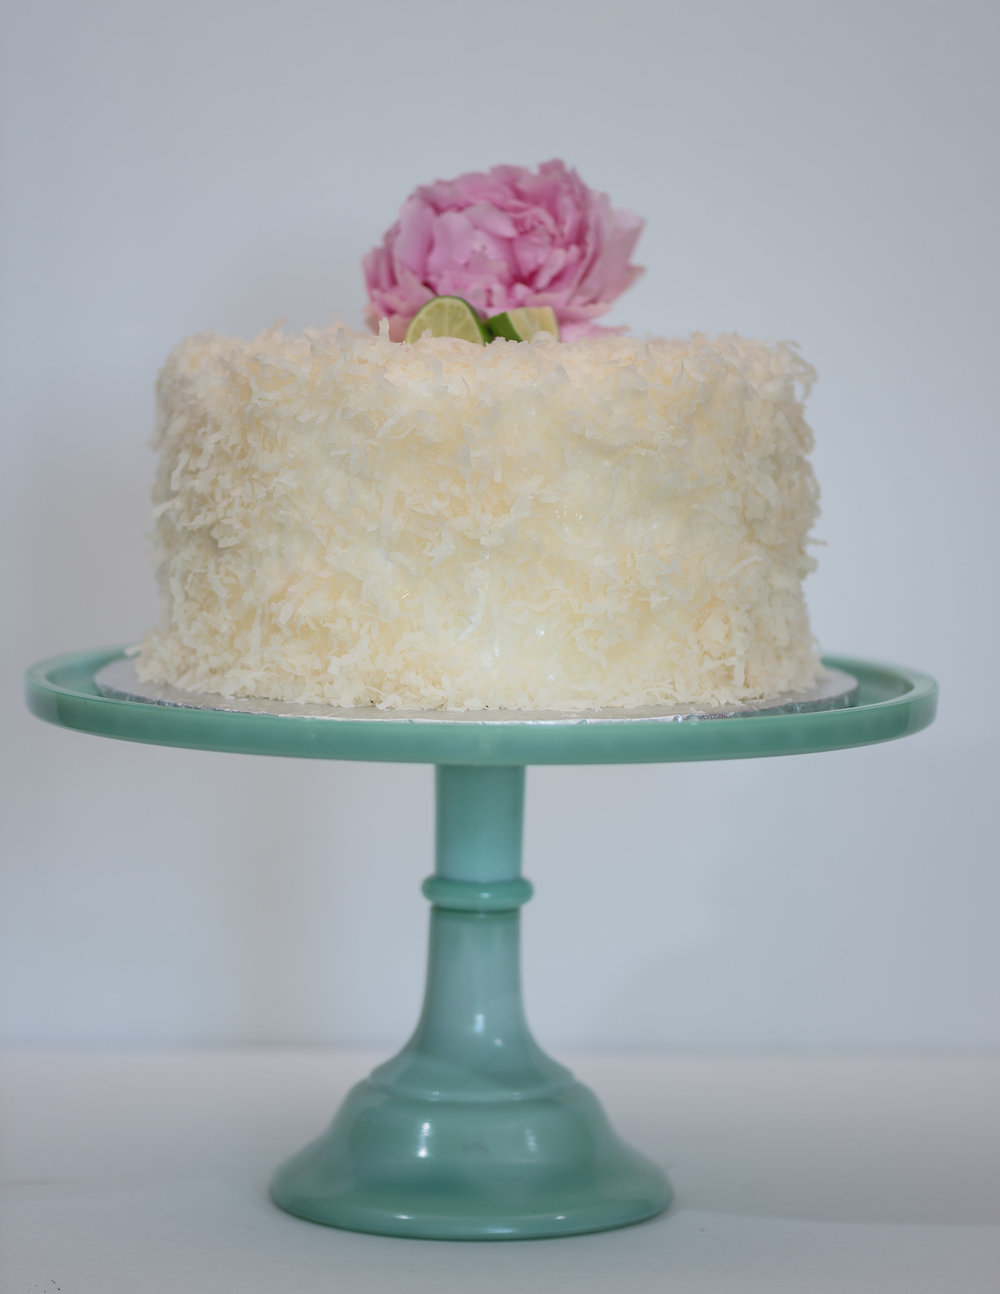 Key lime Coconut cake. Fresh flowers not included